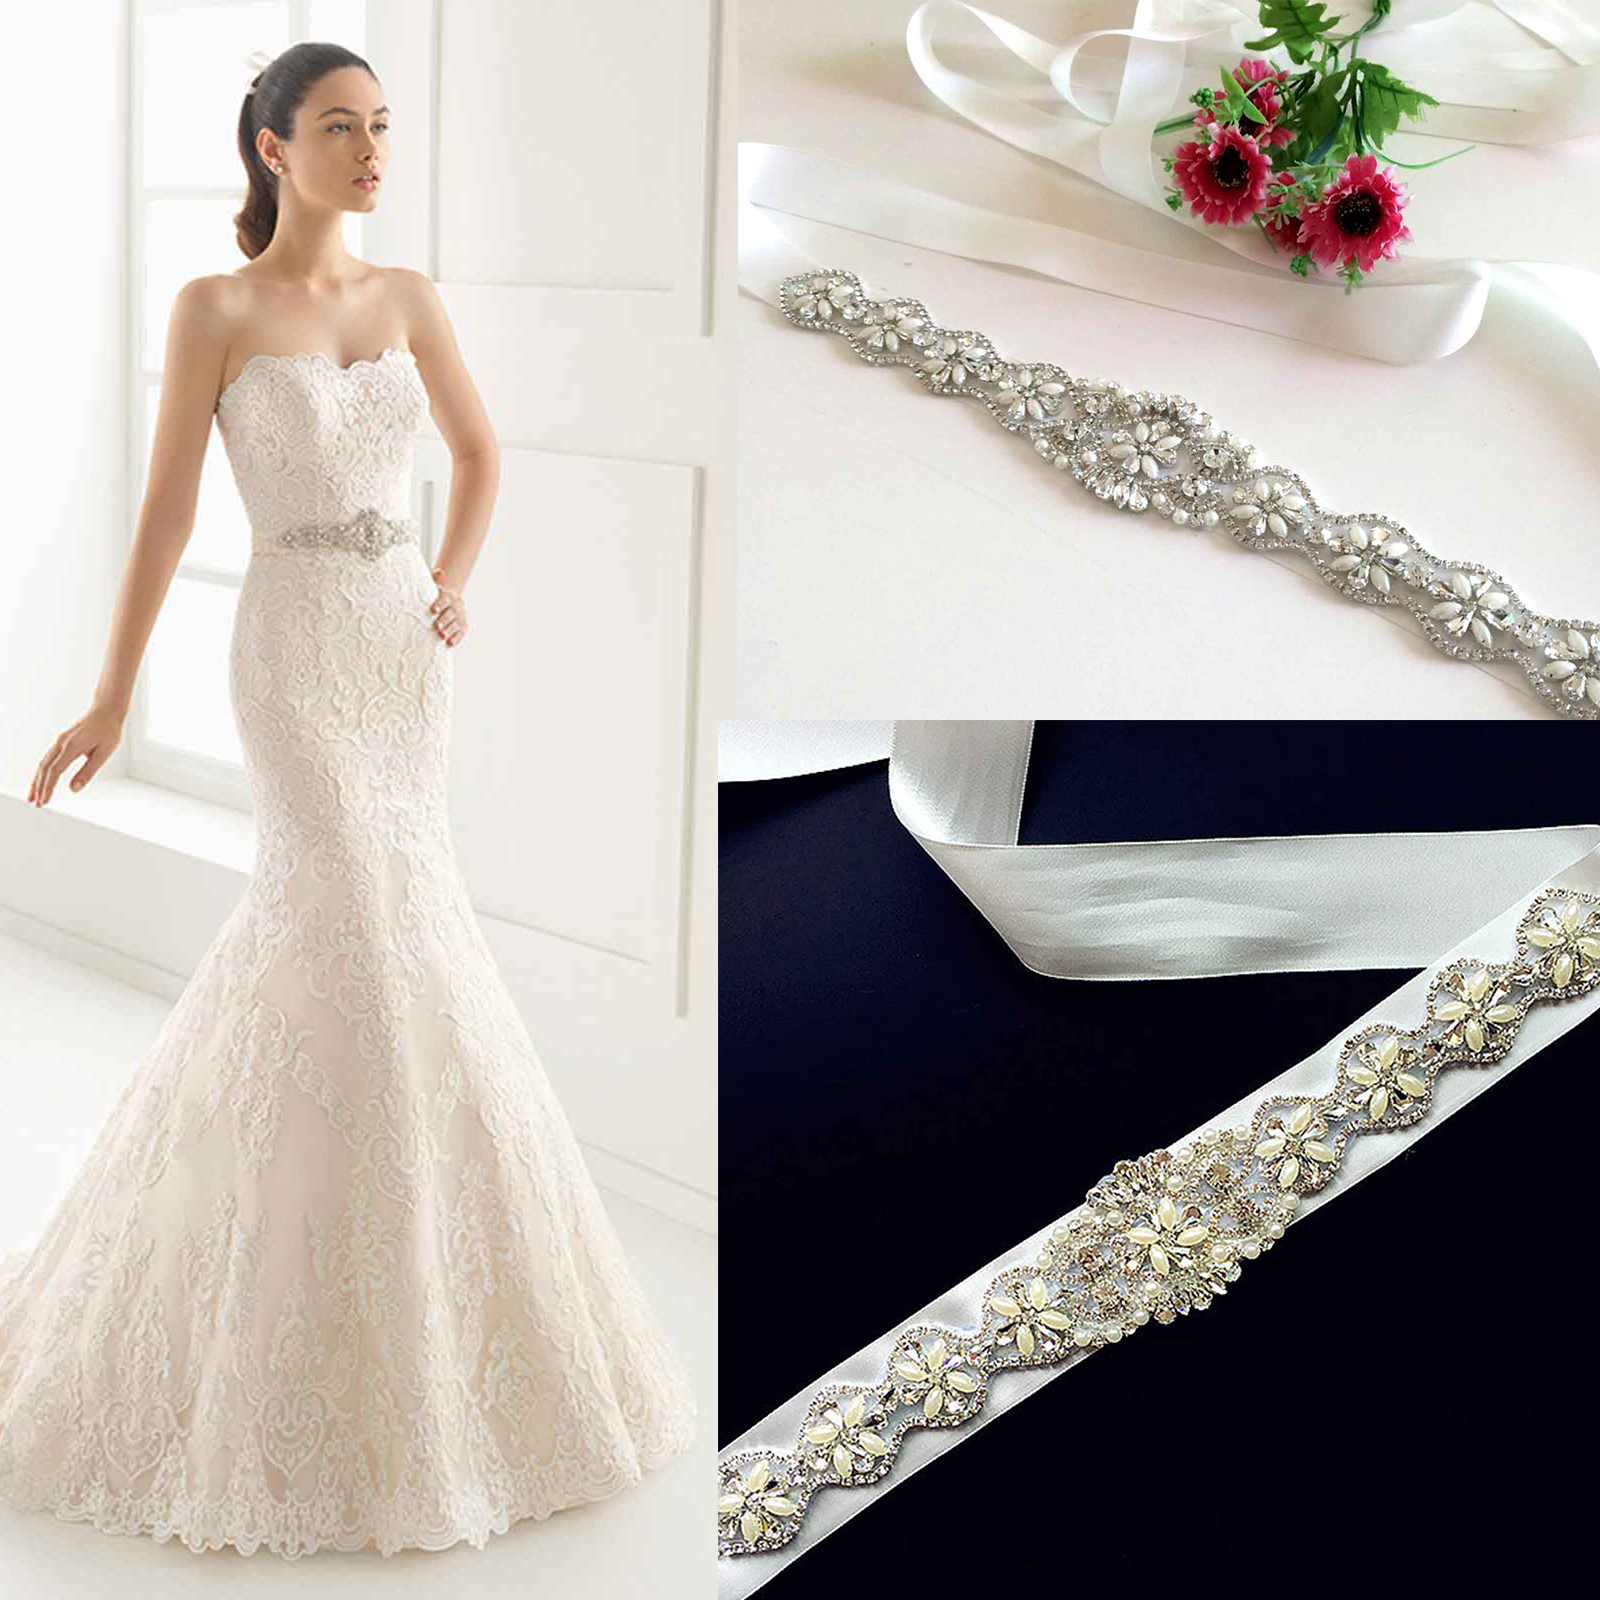 Wedding Gown Belts And Sashes: Bridal Belt Pearl Crystal Diamante Beaded Rhinestone Dress